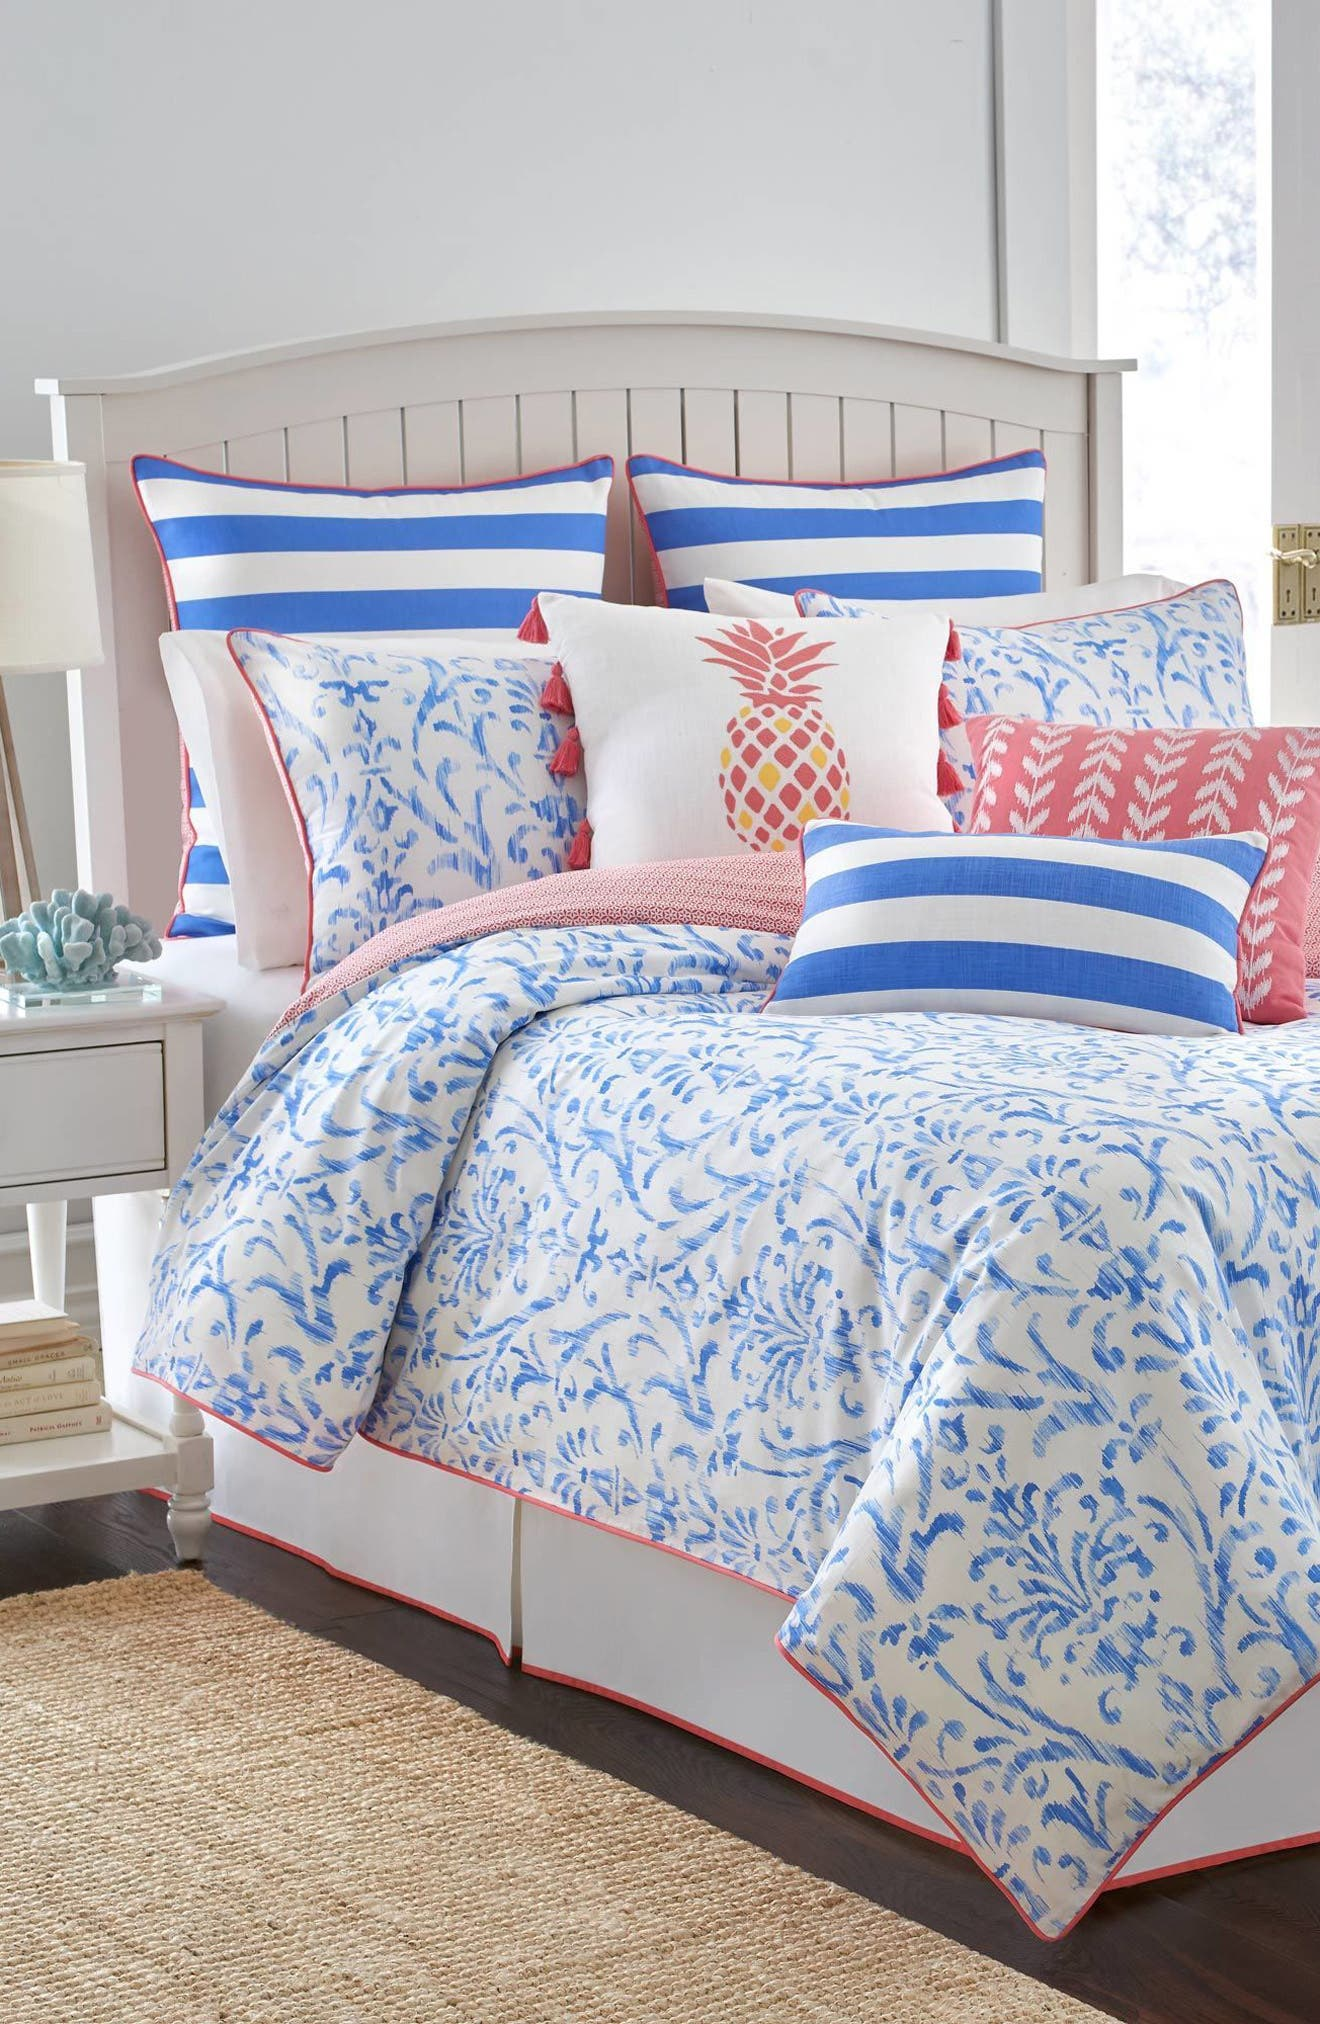 Coastal Ikat Comforter, Sham & Bed Skirt Set,                             Main thumbnail 1, color,                             Cool Water Blue